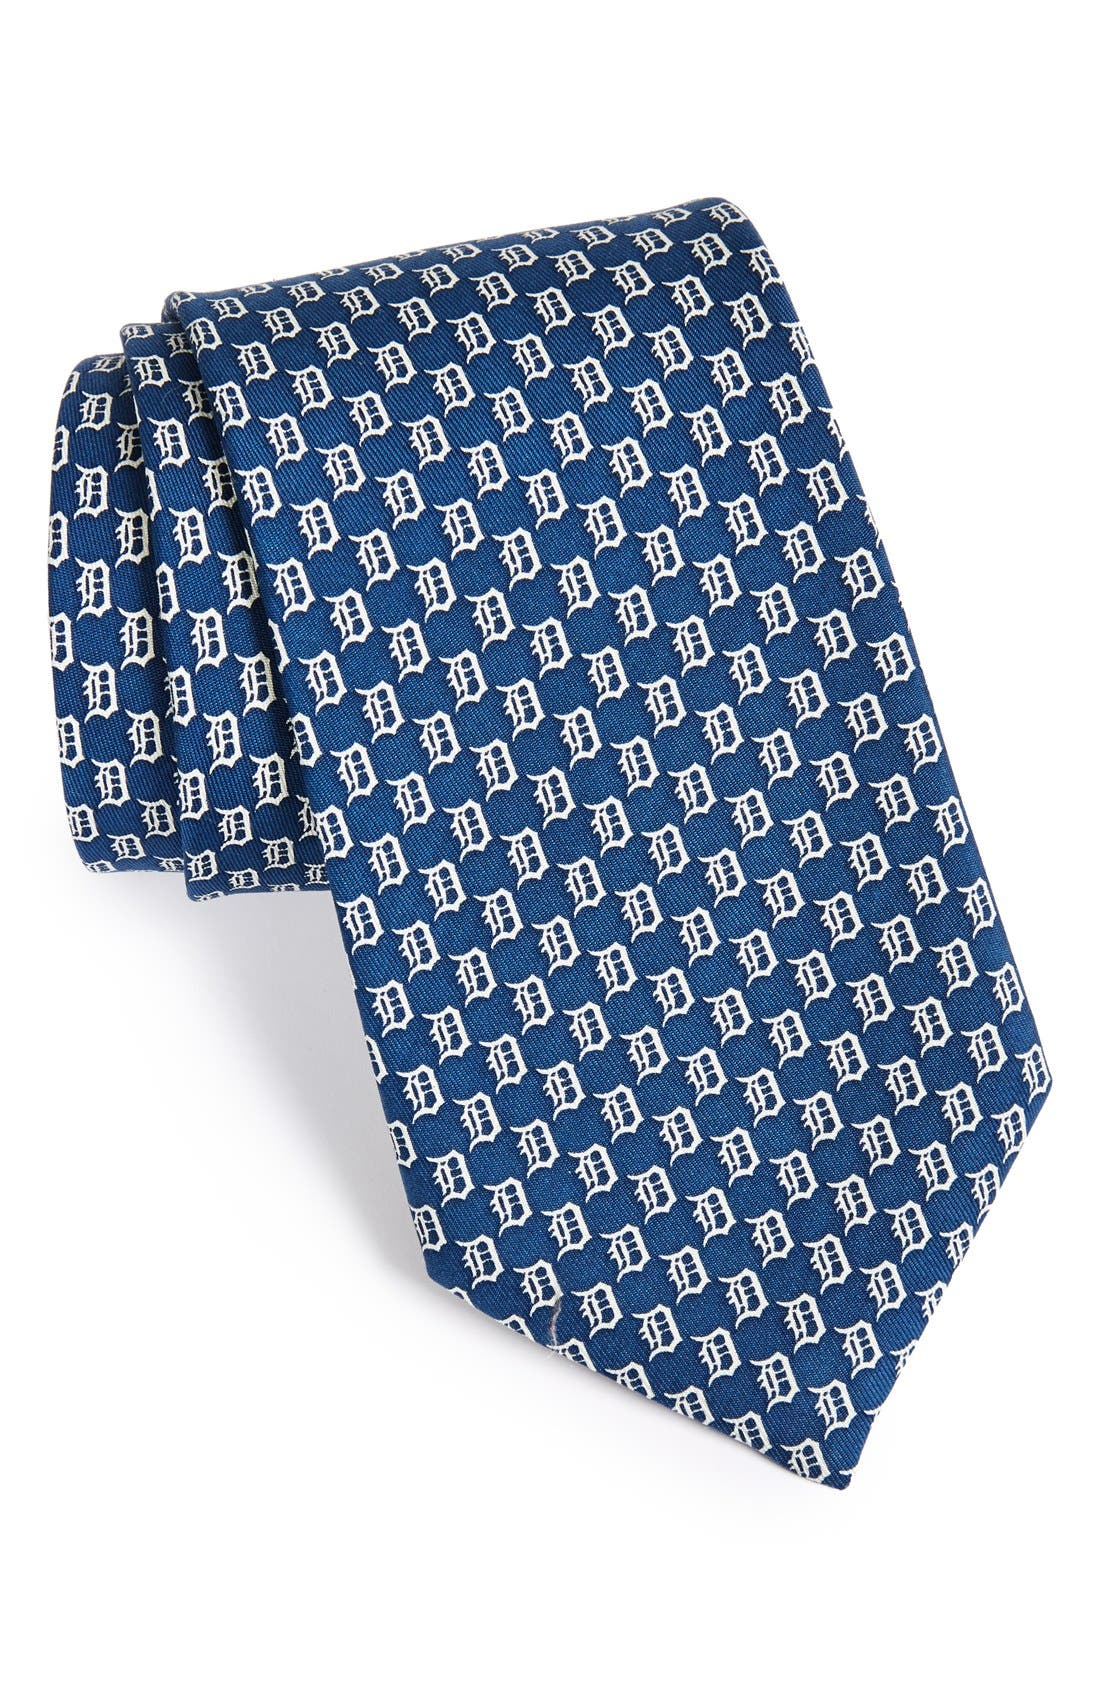 'Detroit Tigers - MLB' Woven Silk Tie,                         Main,                         color,